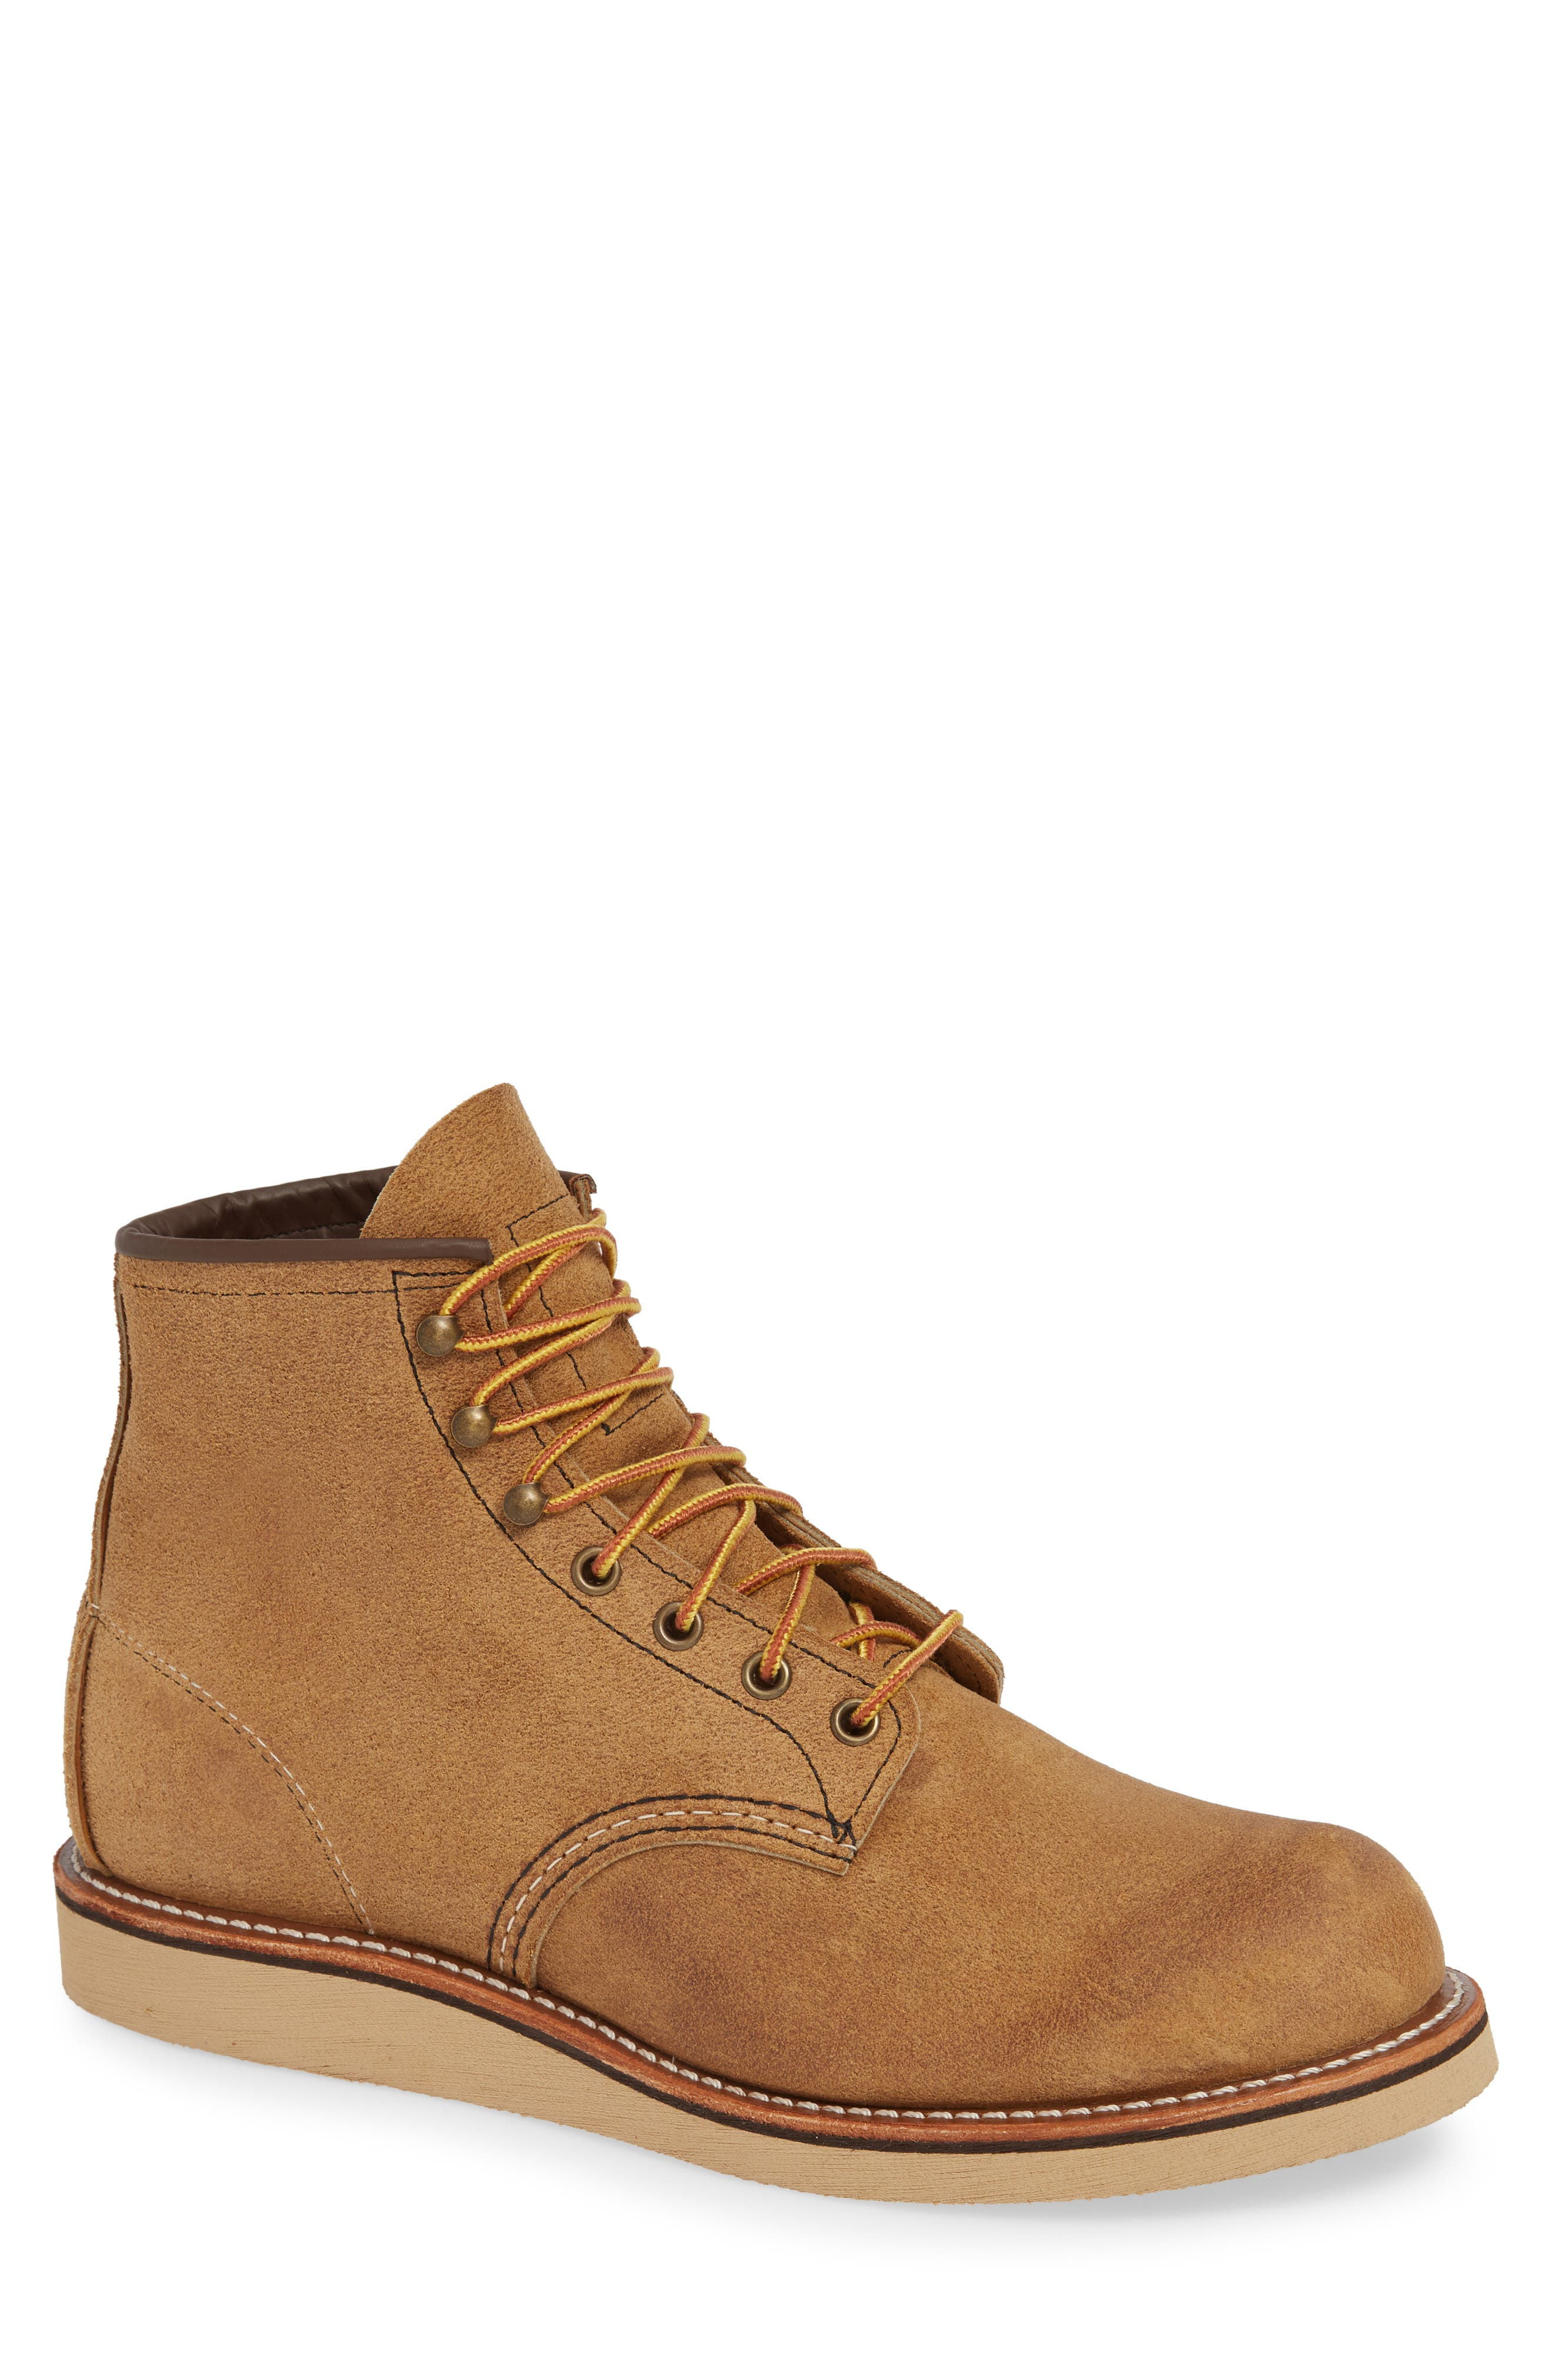 Red Wing Rover Plain Toe Boot, Beige